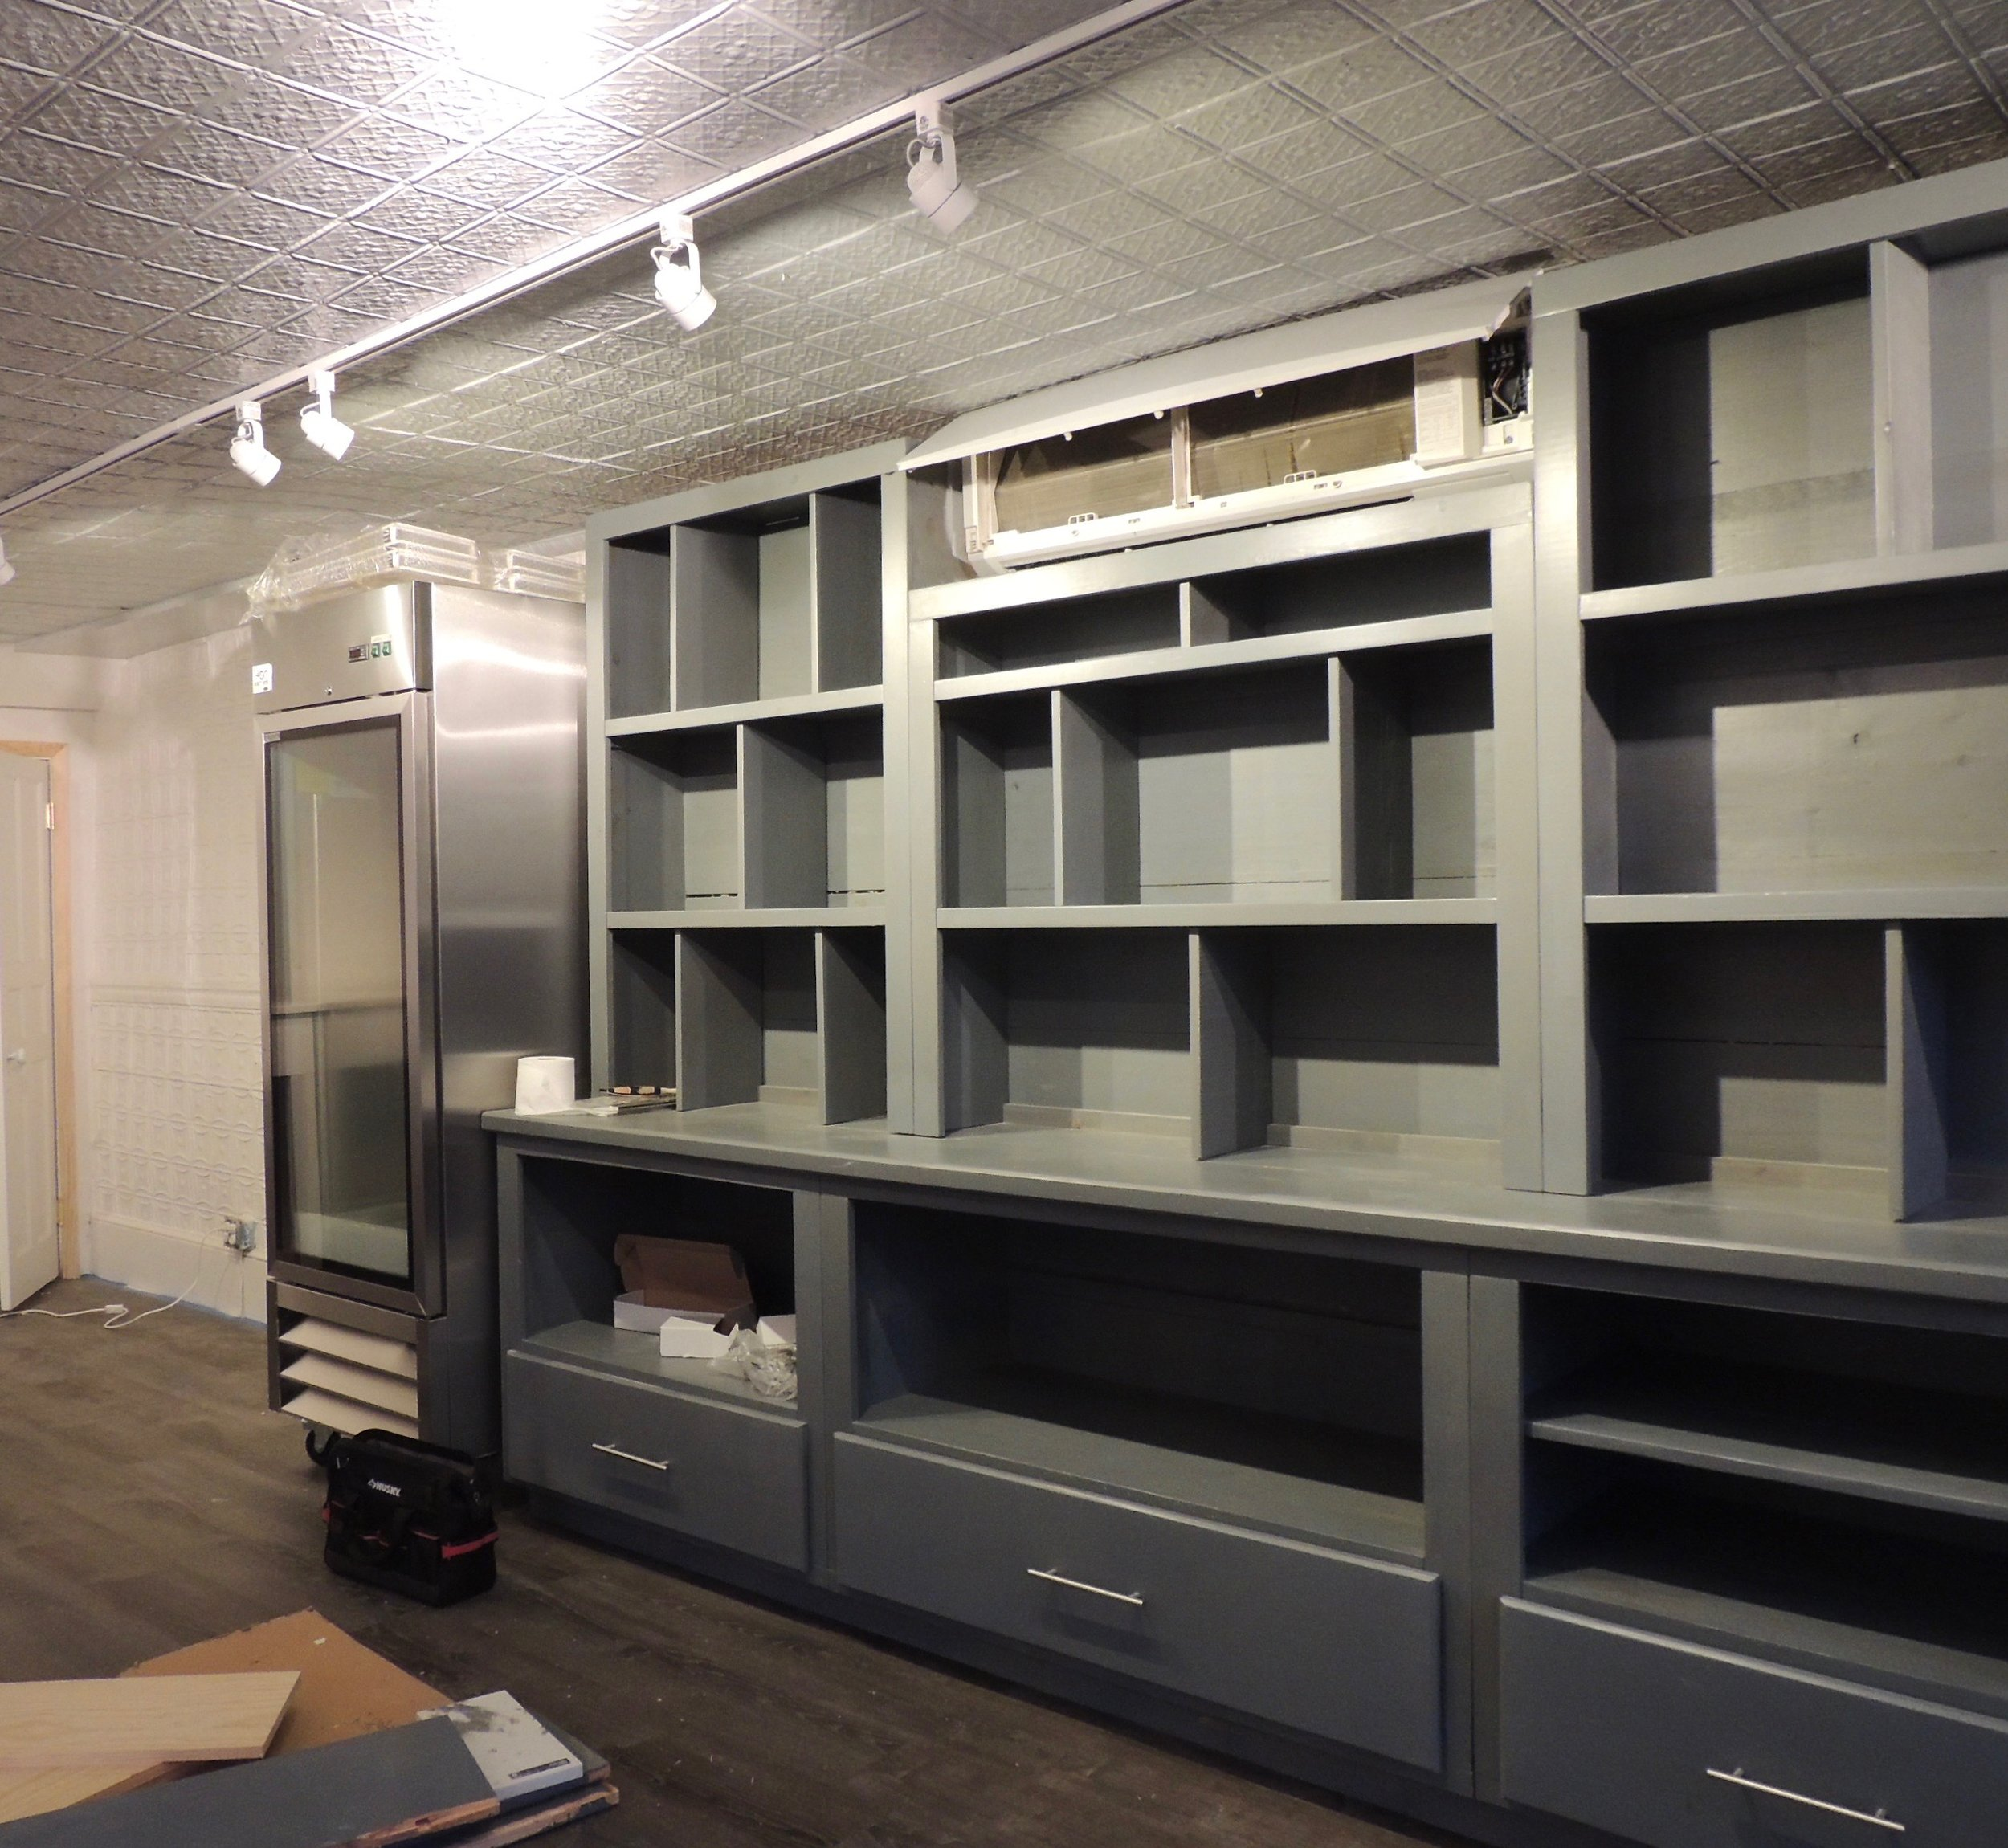 Custom shelving made by John Matson from Matson Construction LLC